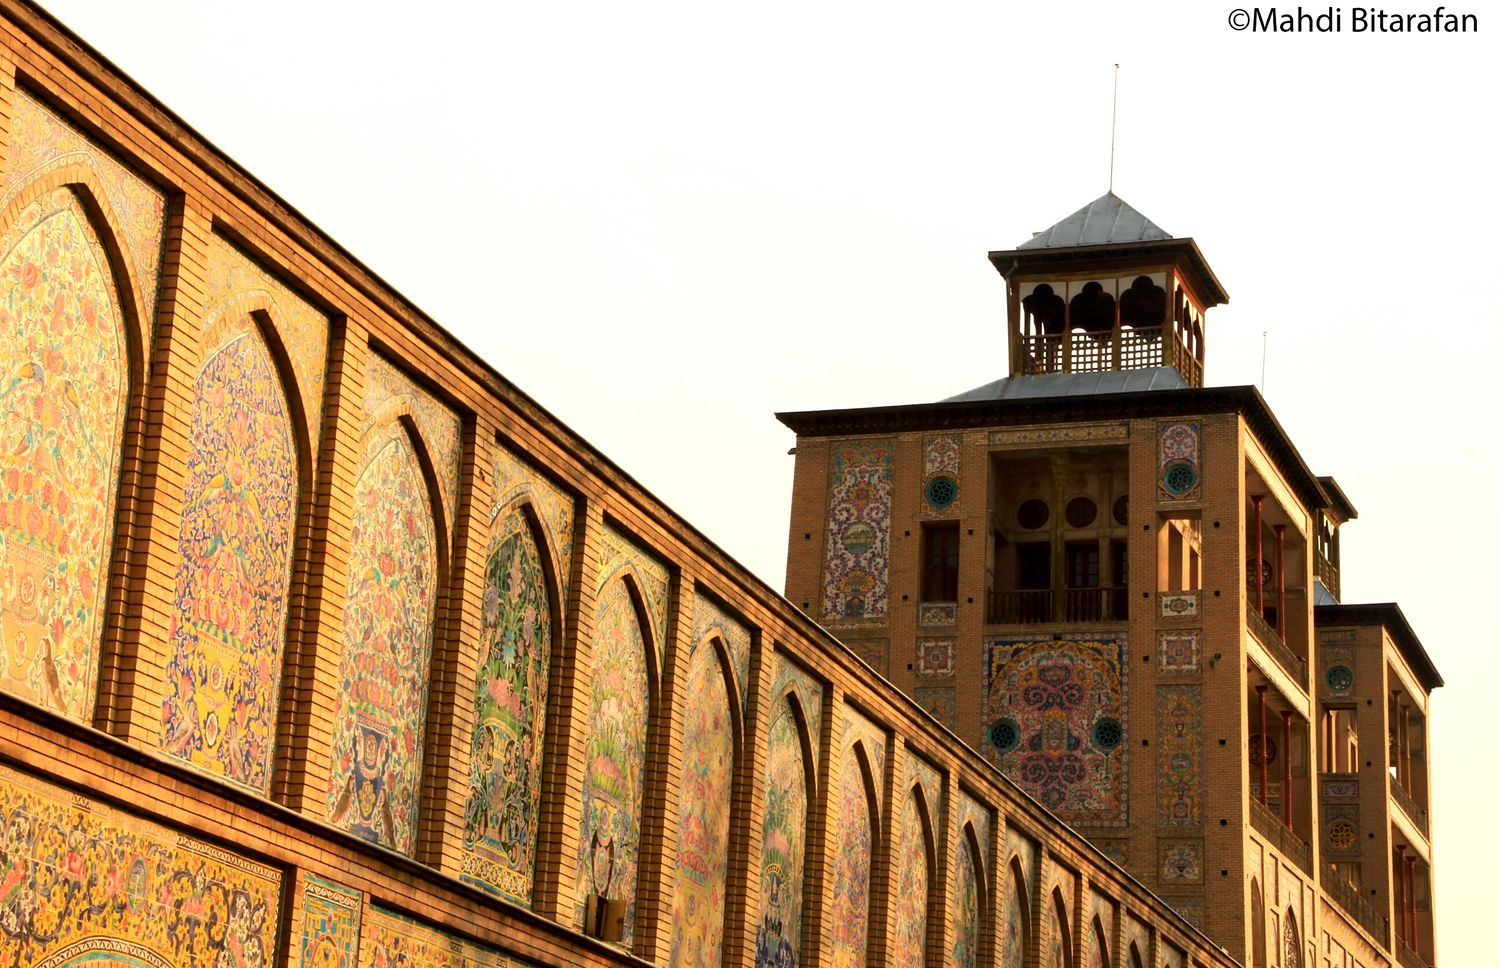 Last picture of golestan place.. EyEmNewHere Tradition Photo Photography Tehran, Iran Golestanplace Mahdibitarafan Eyemphotography EyeEmBestPics Historical Building Iranphotography Historical Monuments Eyem Best Shots EyeEm Canon700D کاخ گلستان محمد_مهدی_بیطرفان دوربین عکس عکاسی